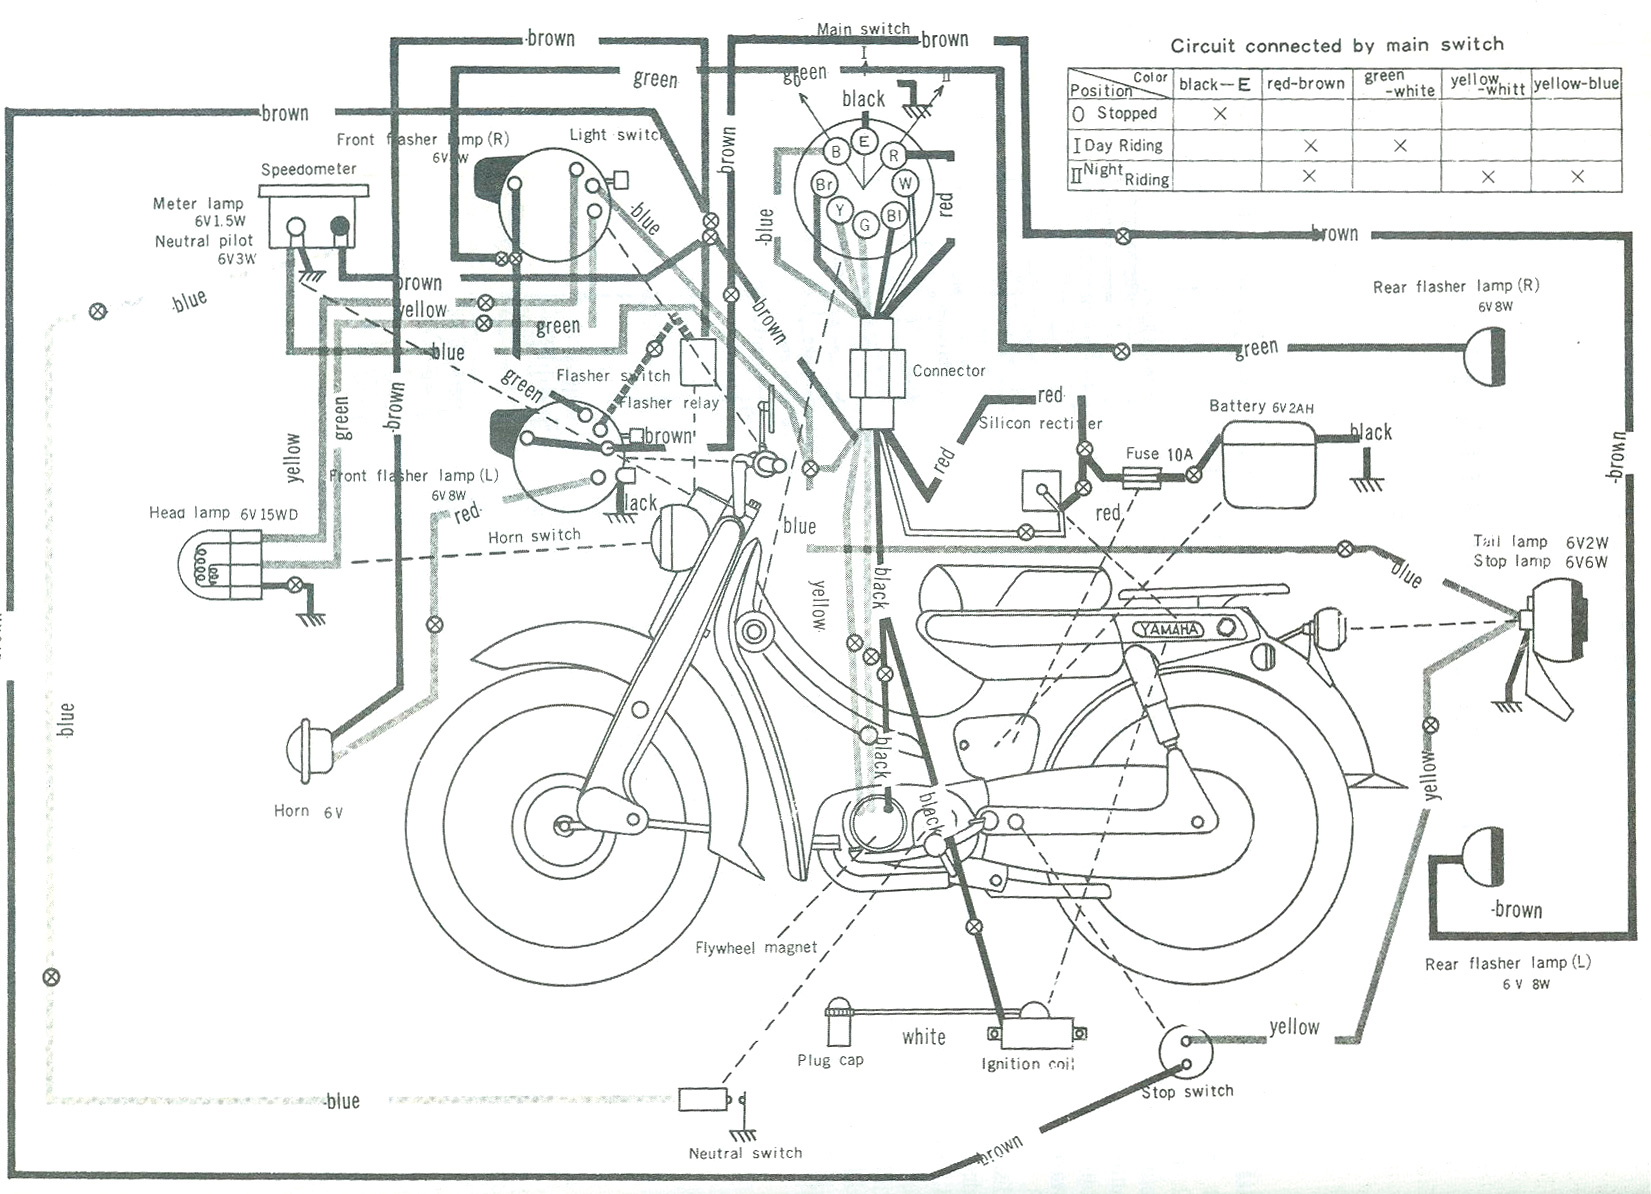 u5e_wiring u5e] motorcycle wiring schematics diagram yamaha dt 100 wiring diagram at bakdesigns.co